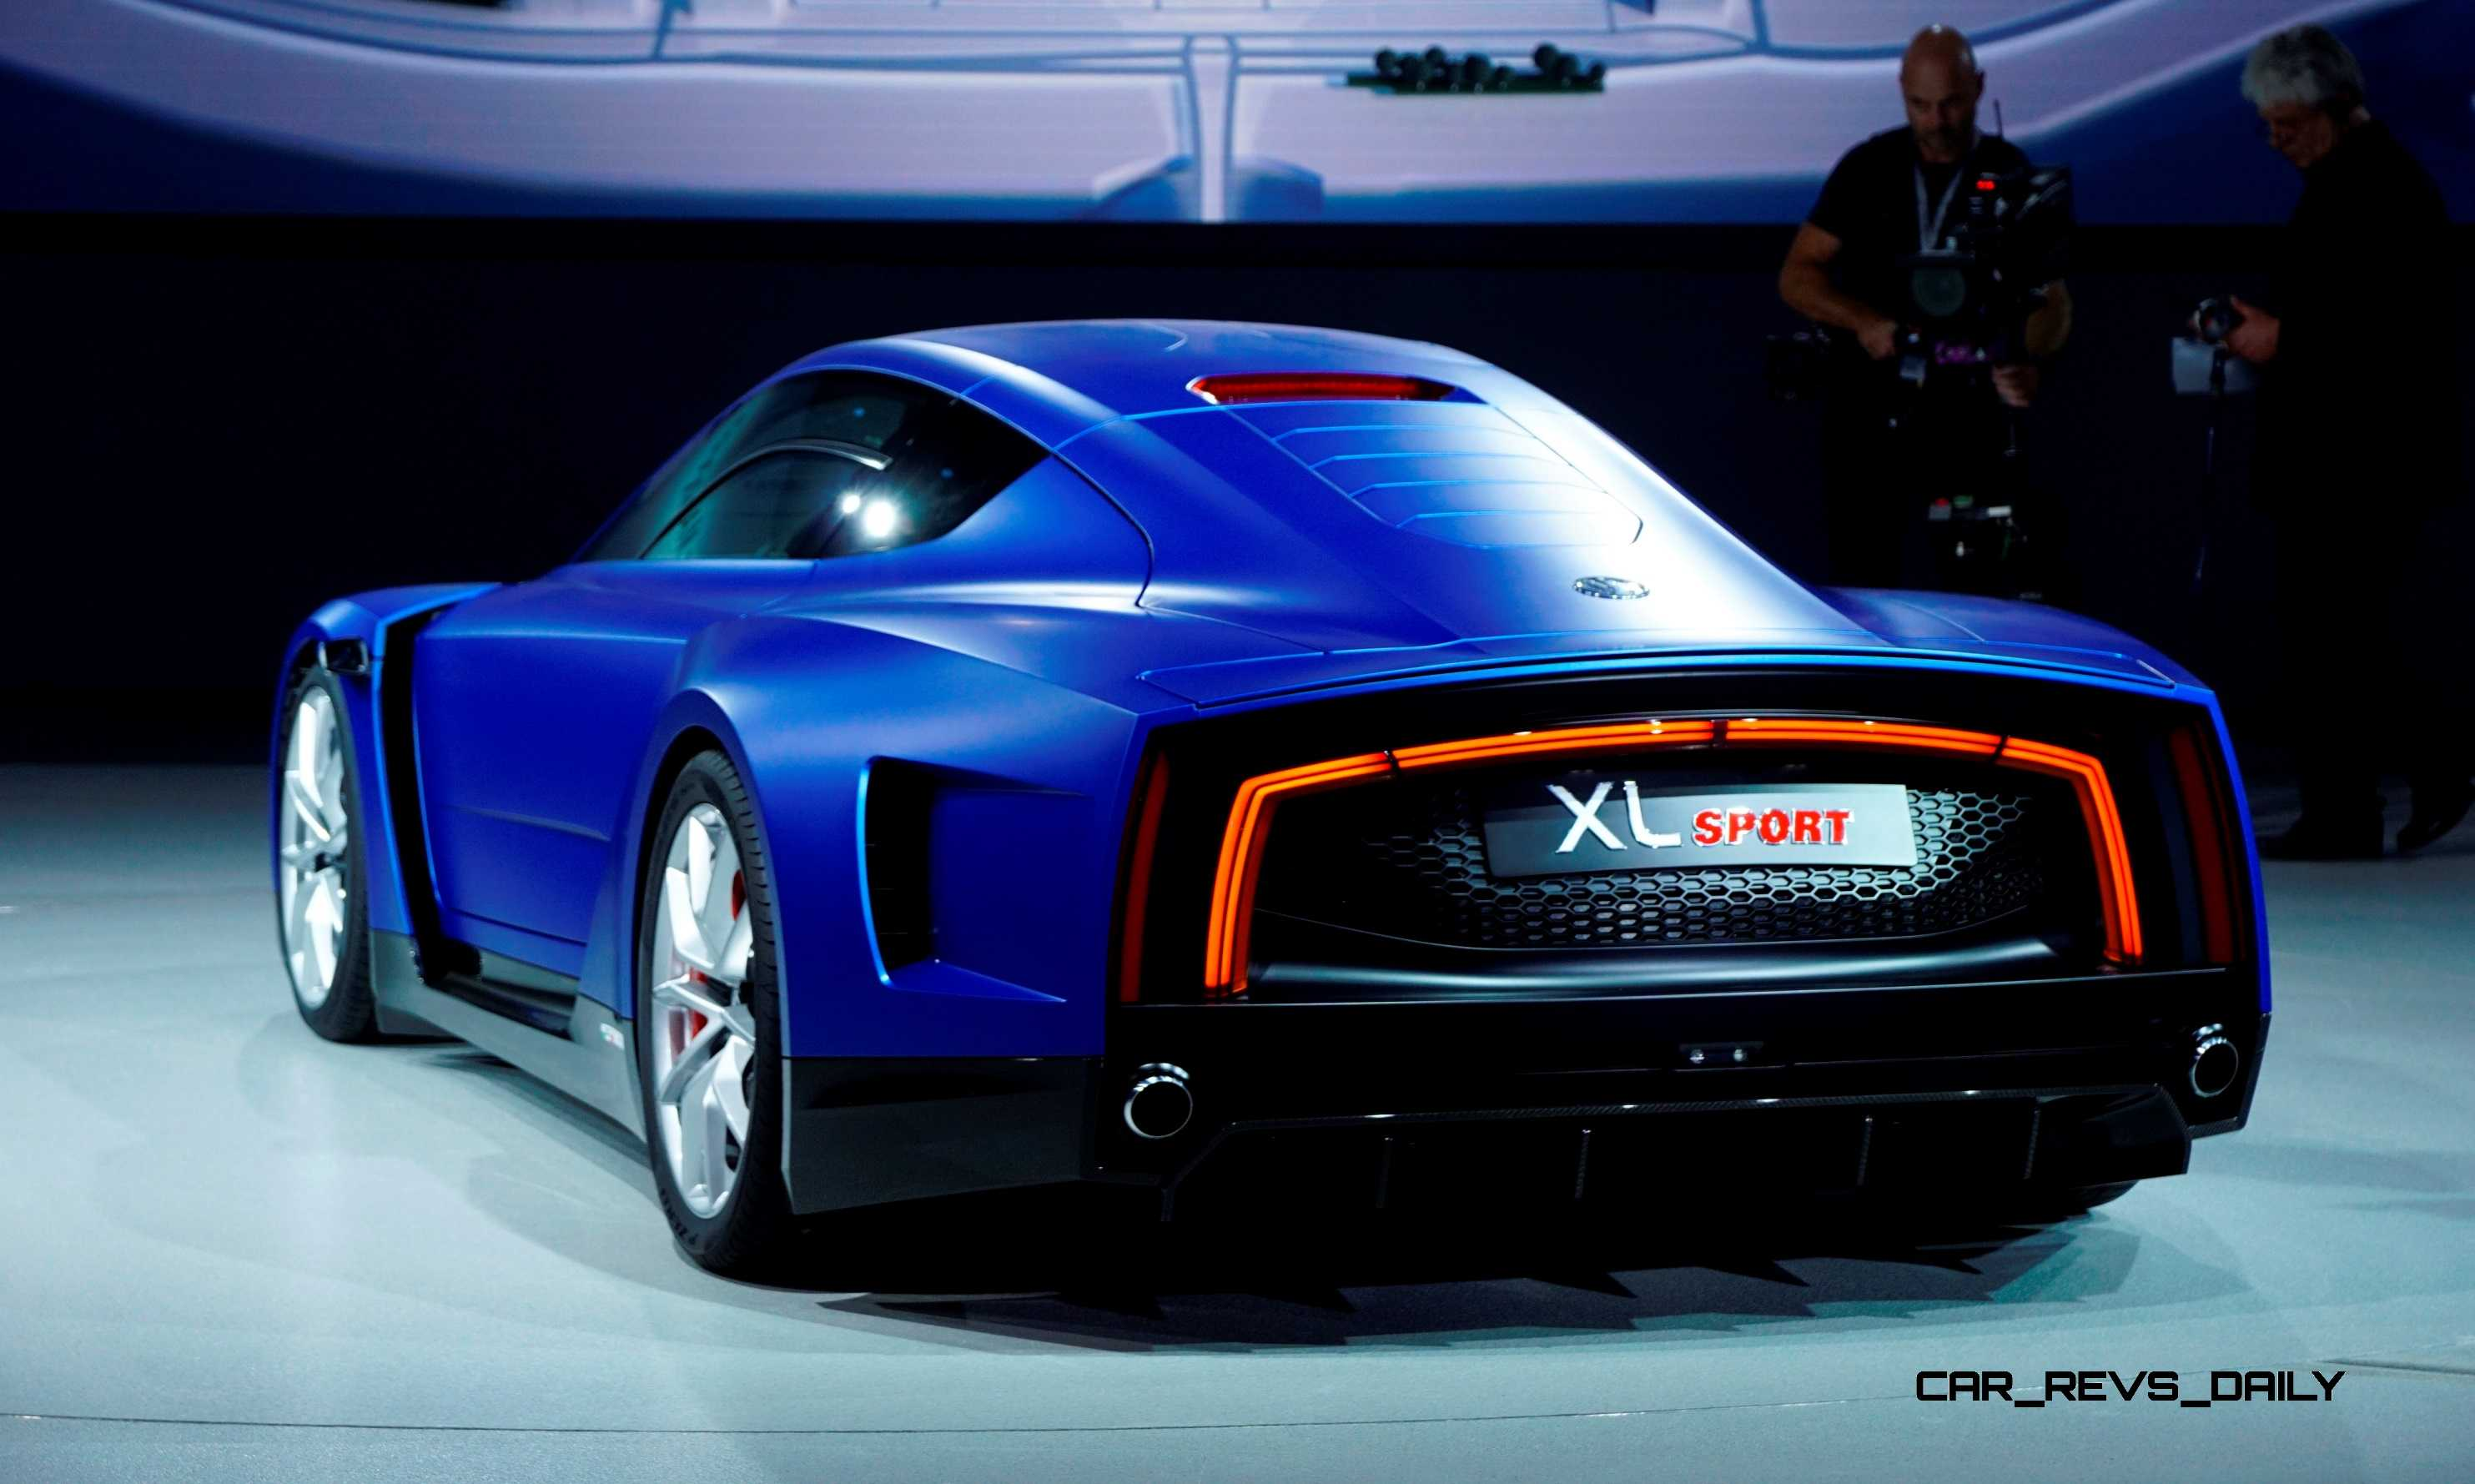 2014 Volkswagen XL Sport Concept Makes One Seriously Sexy BMW i8 Competitor